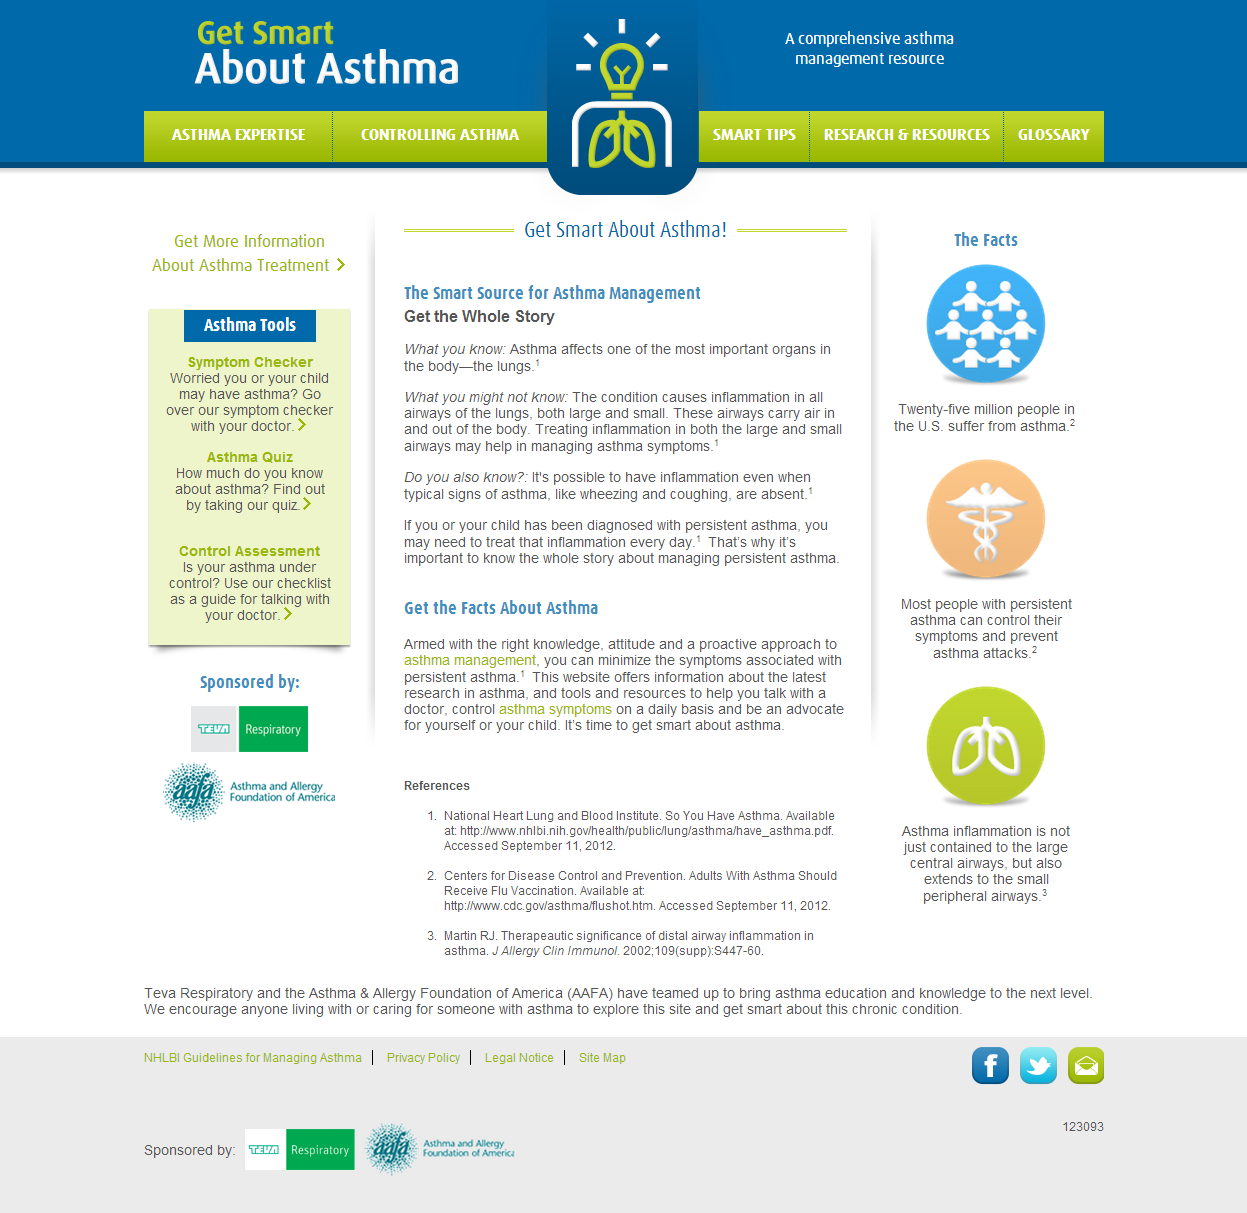 Get Smart About Asthma